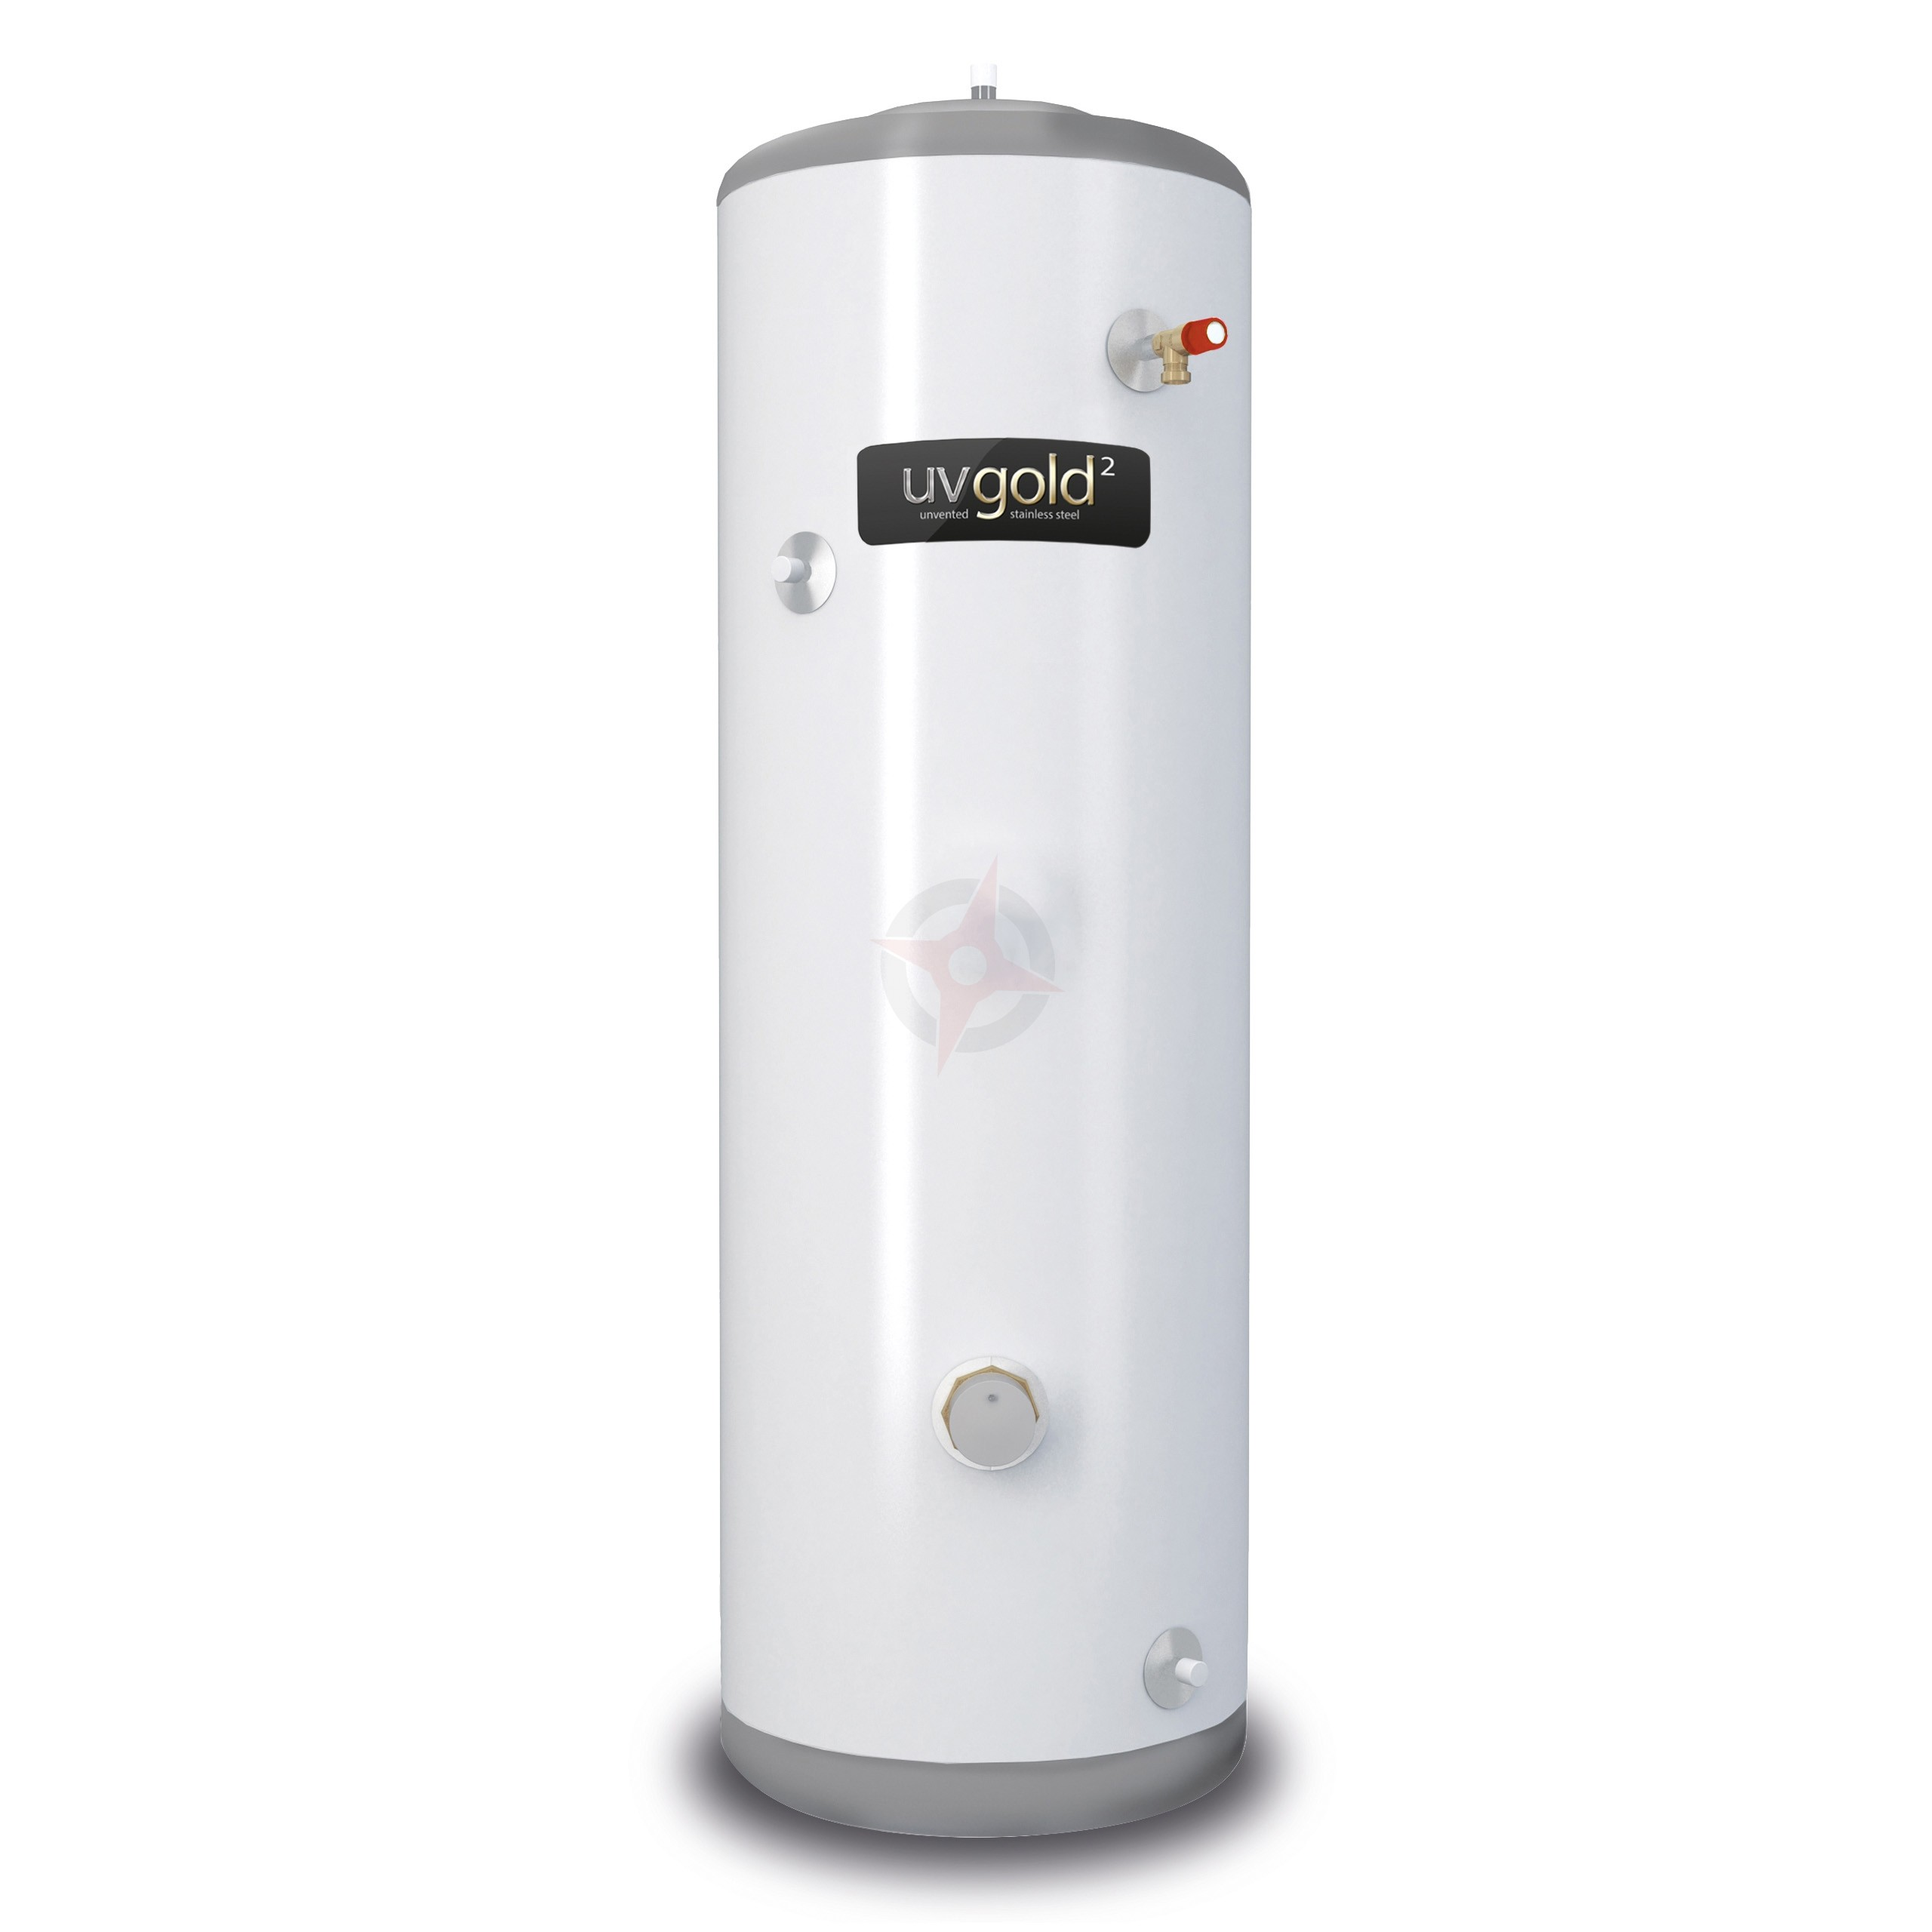 uvgold2 90L Direct unvented hot water cylinder and kit - Compass ...